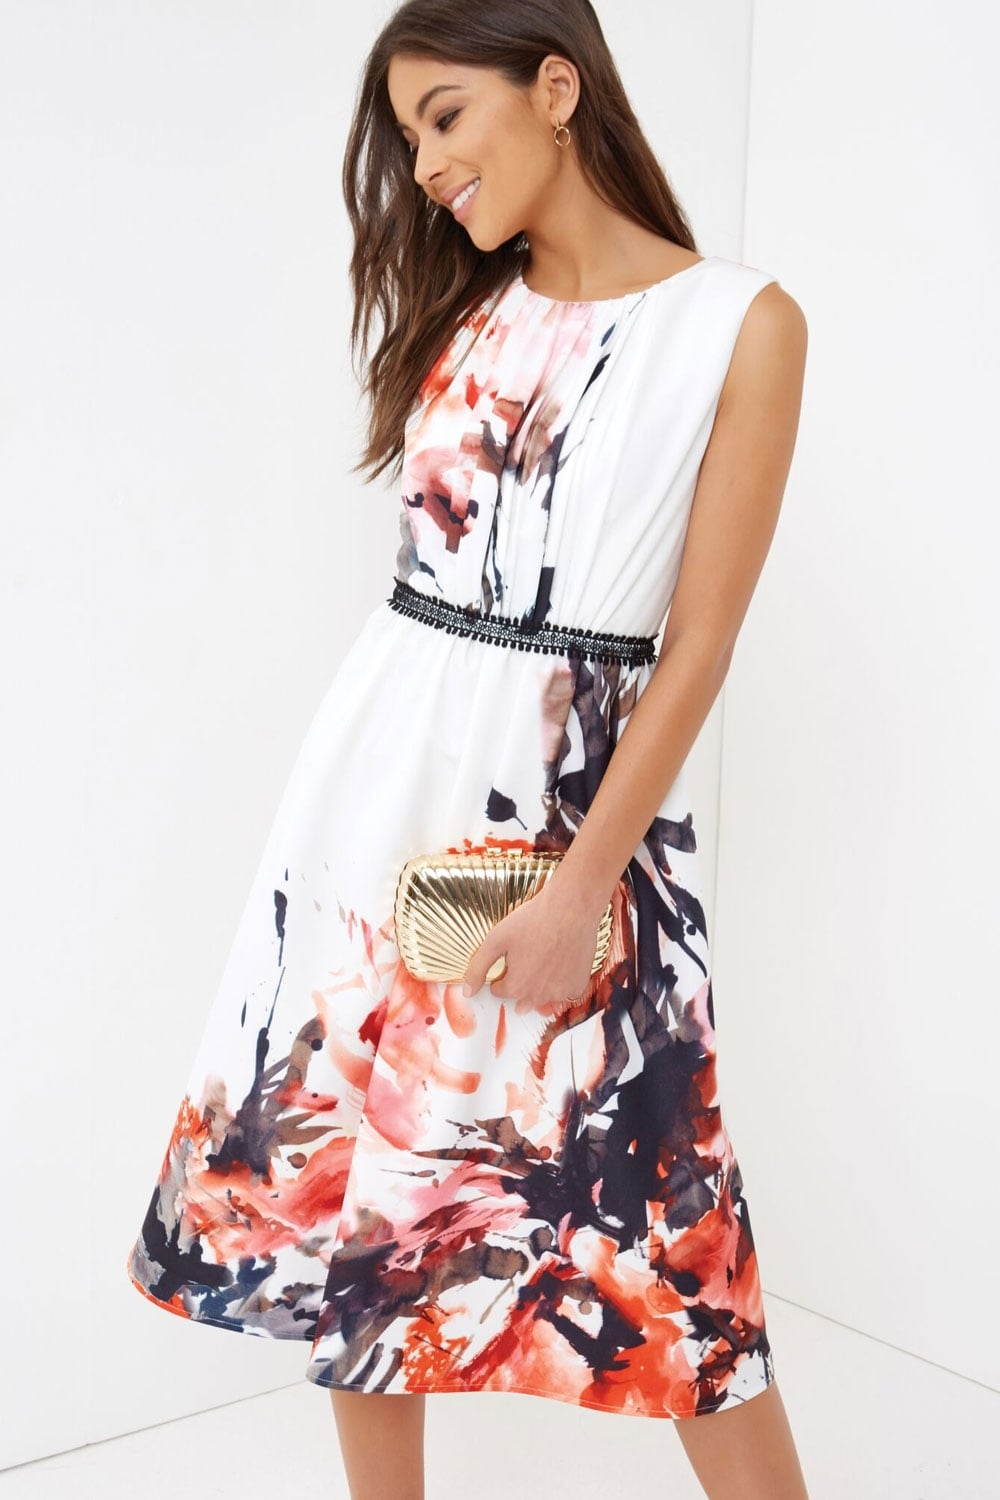 Ink Print Midi Dress From Little Mistress Uk